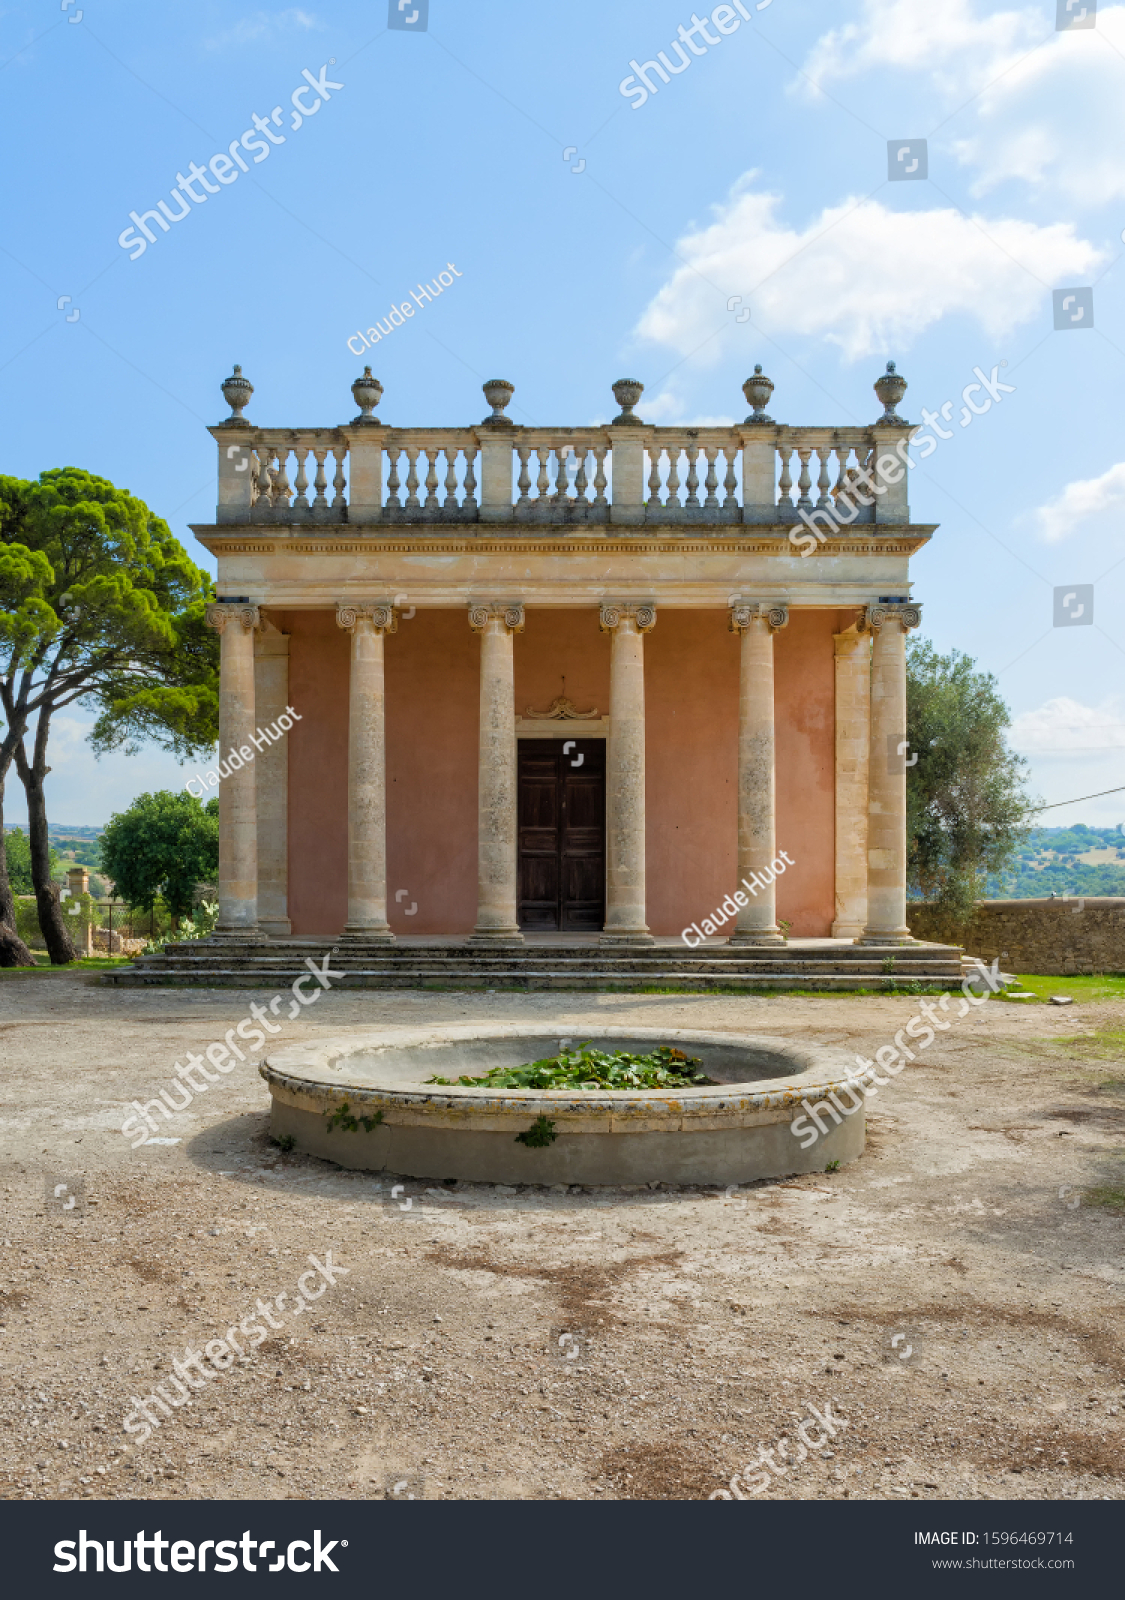 RAGUSA, SICILY, ITALY - SEPTEMBER 20, 2019: ThIs Neoclassical coffee house is in the garden of the Donnafugata Castle which is a popular tourist attraction in Ragusa, Sicily, Italy.